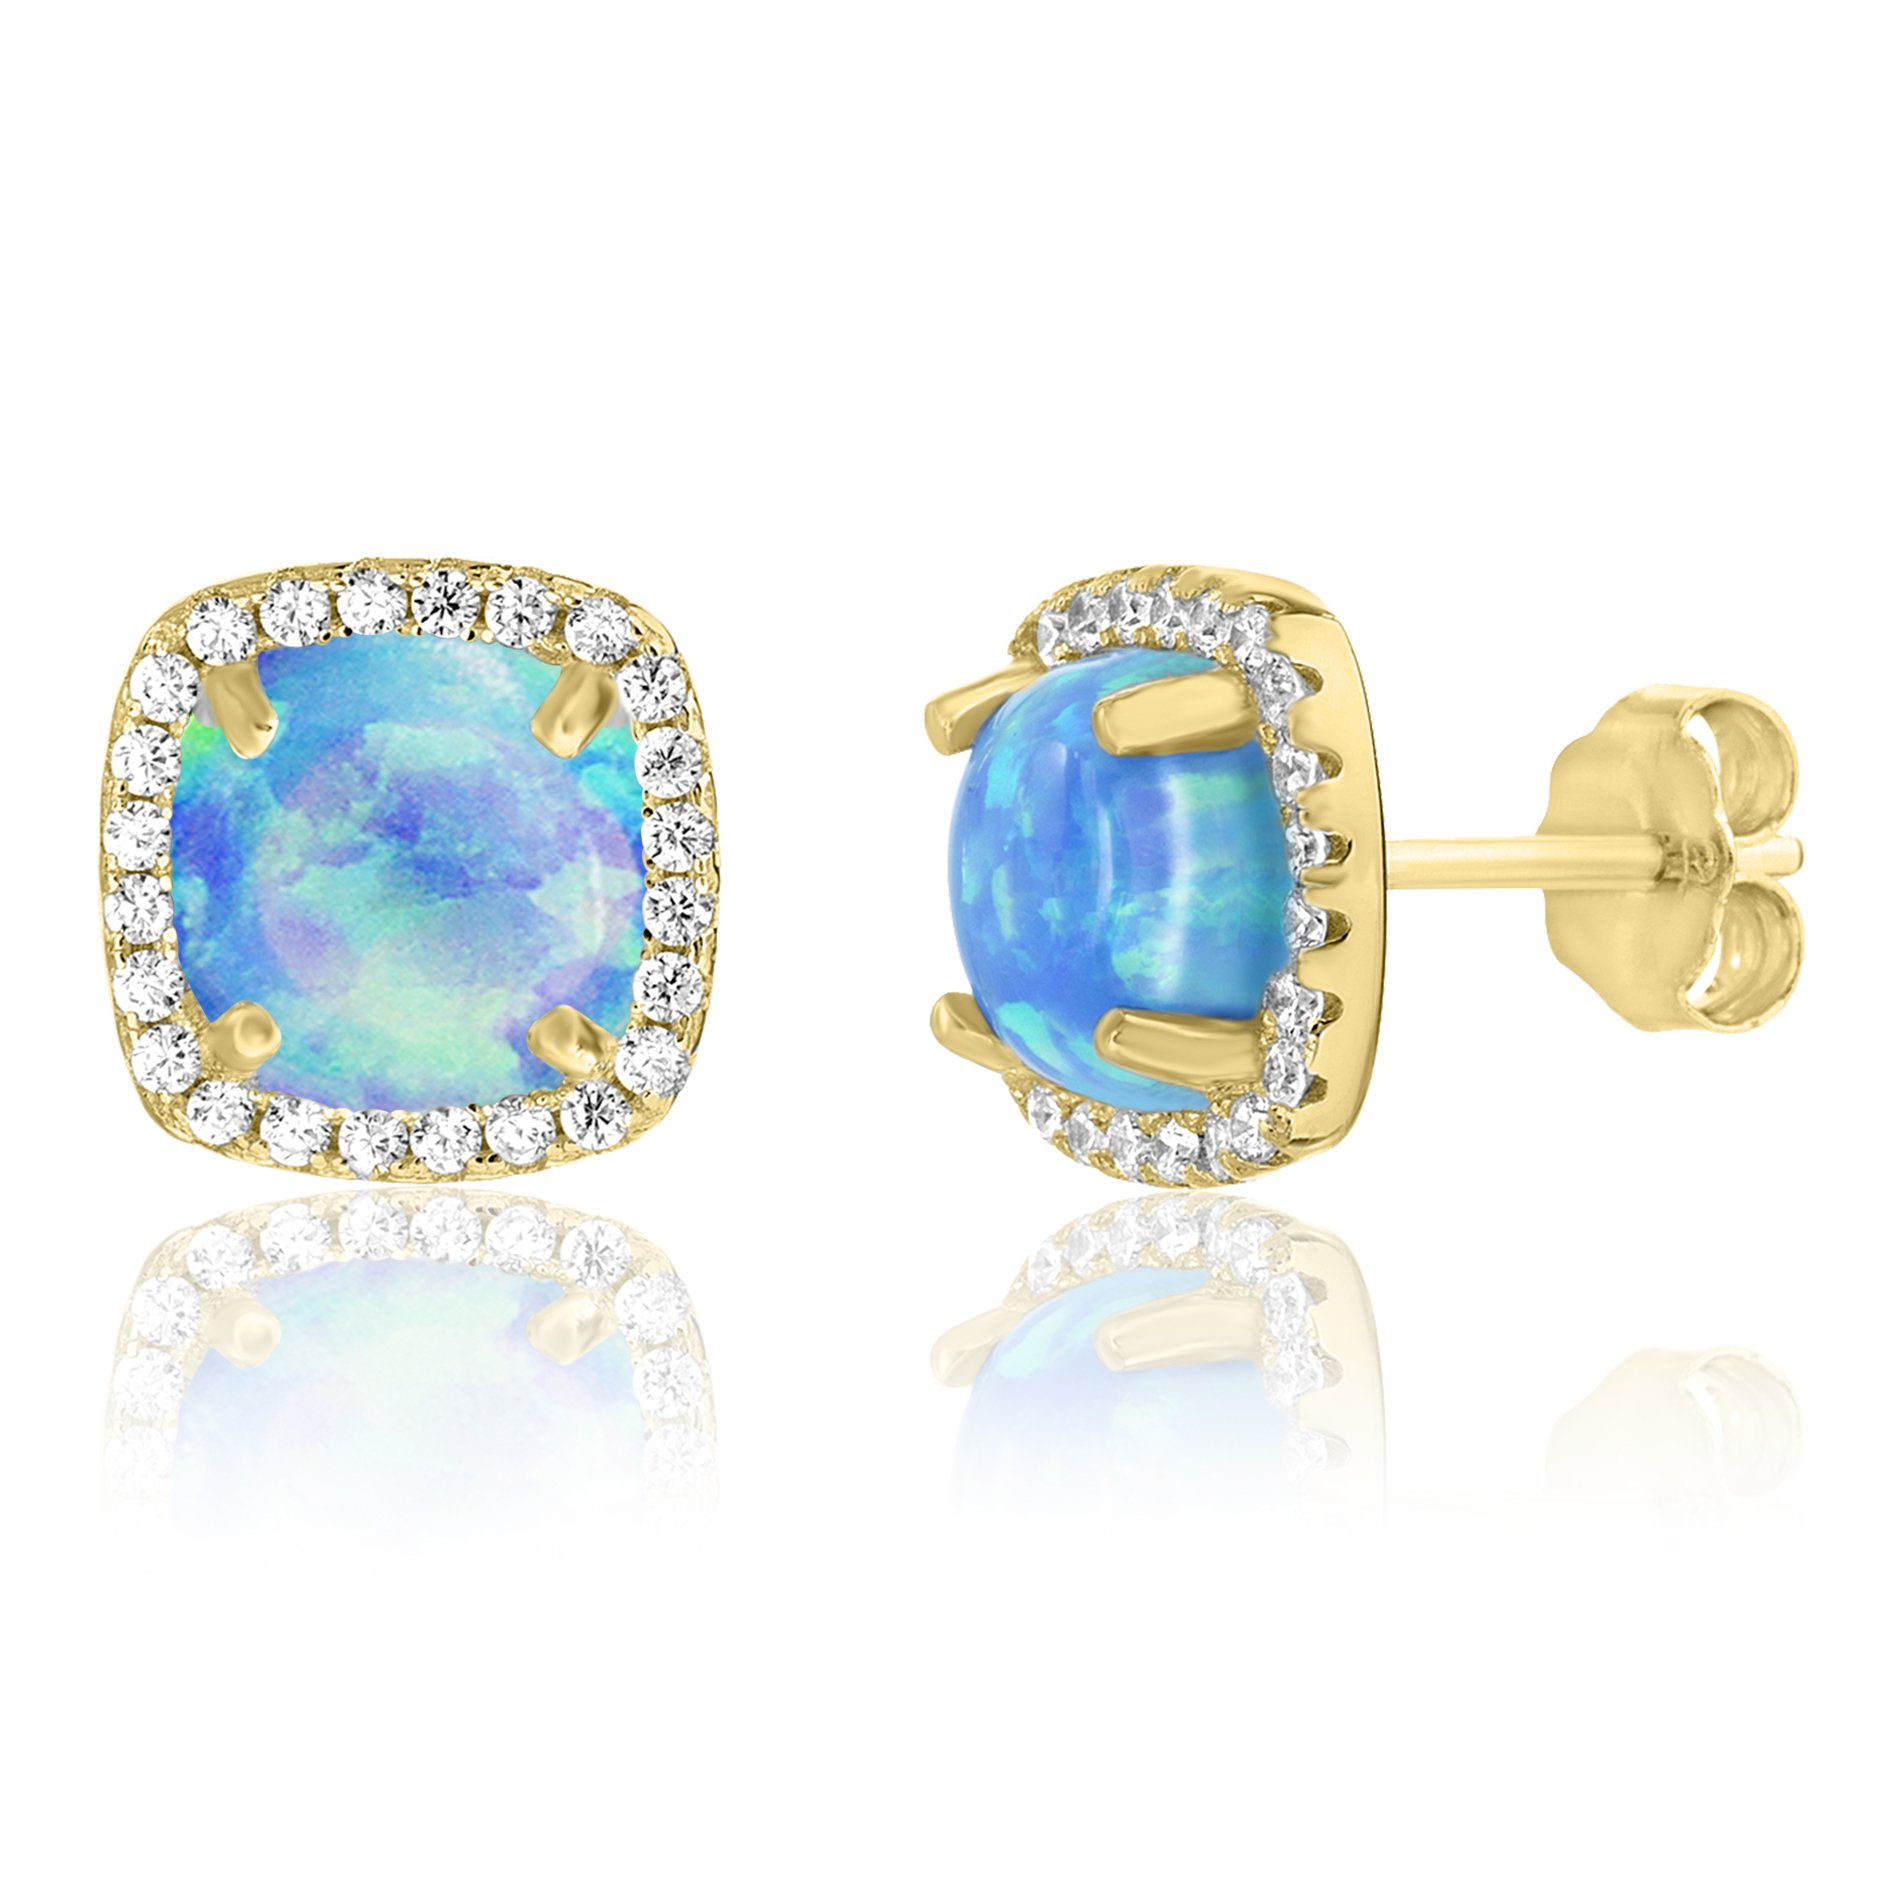 LESA MICHELE Lab Created Blue Opal and Genuine Cubic Zirconia Square Stud Earring in Gold over Sterling Silver